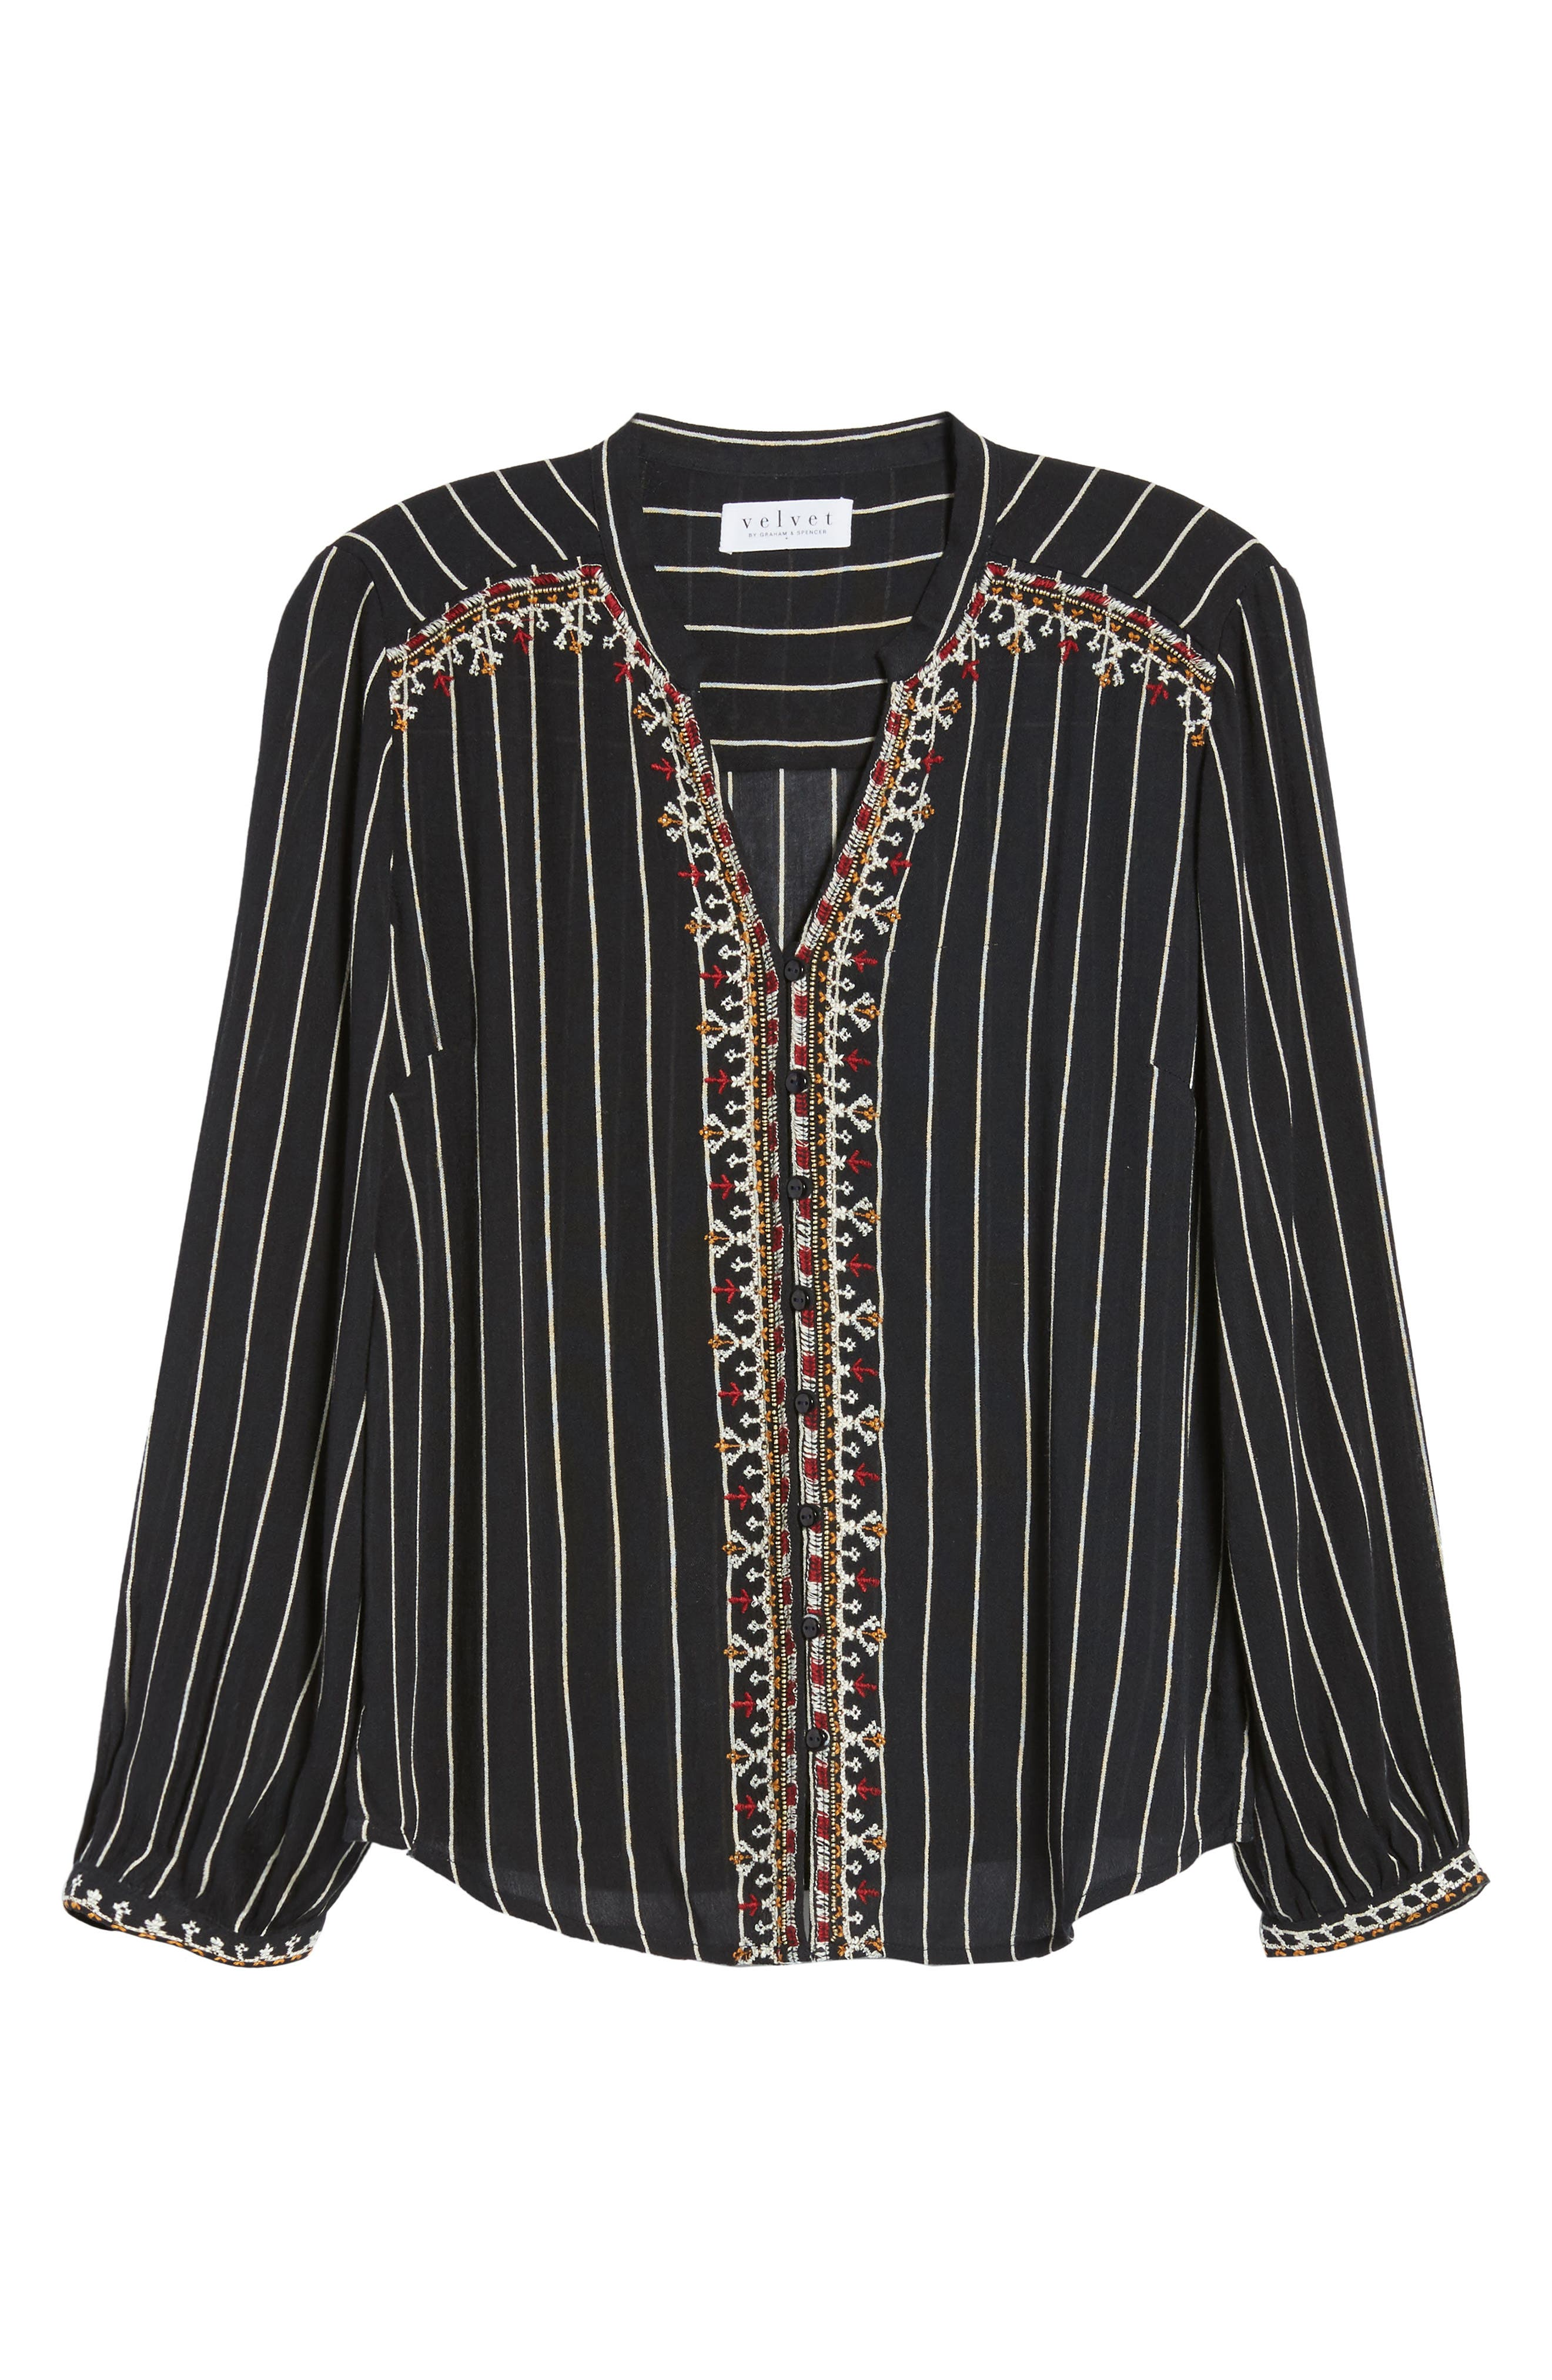 VELVET BY GRAHAM & SPENCER,                             Embroidered Top,                             Alternate thumbnail 6, color,                             STRIPE